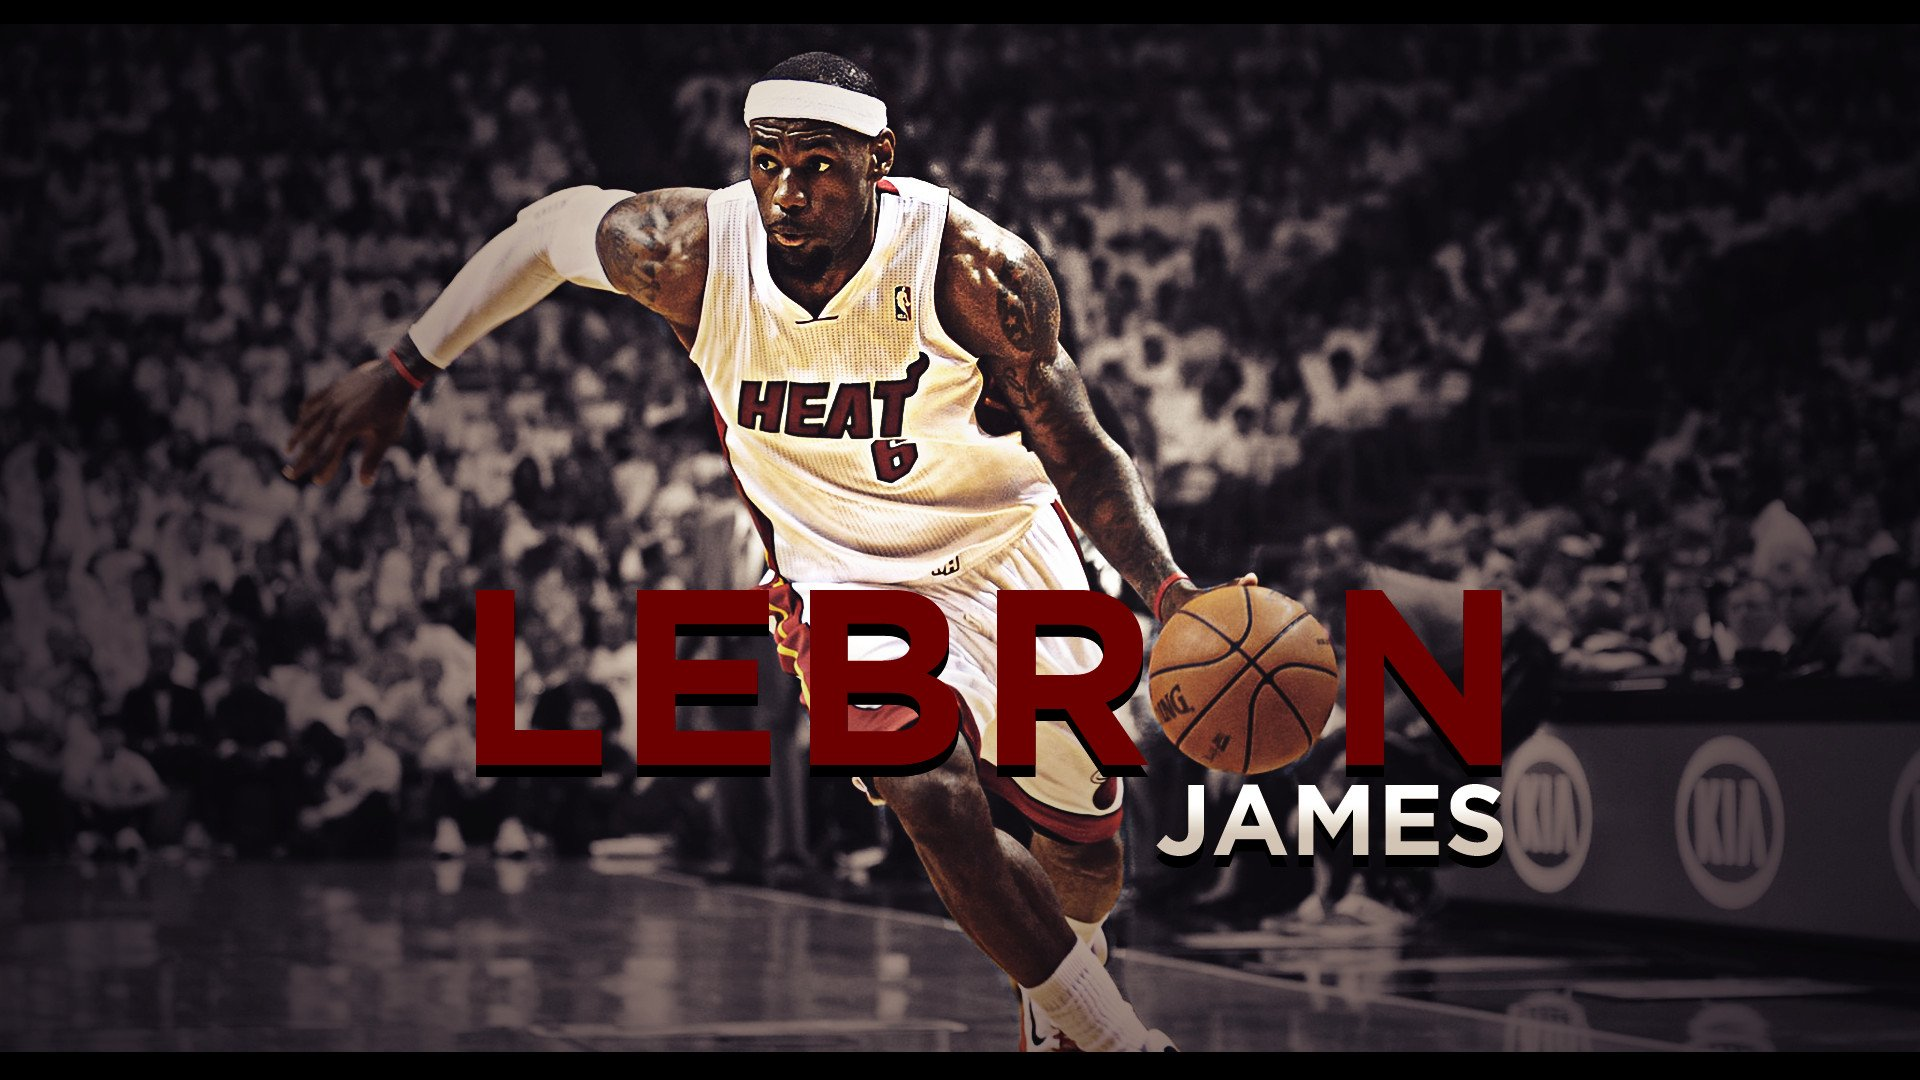 Lebron James HD Wallpaper Wallpapers Backgrounds Images Art 1920x1080